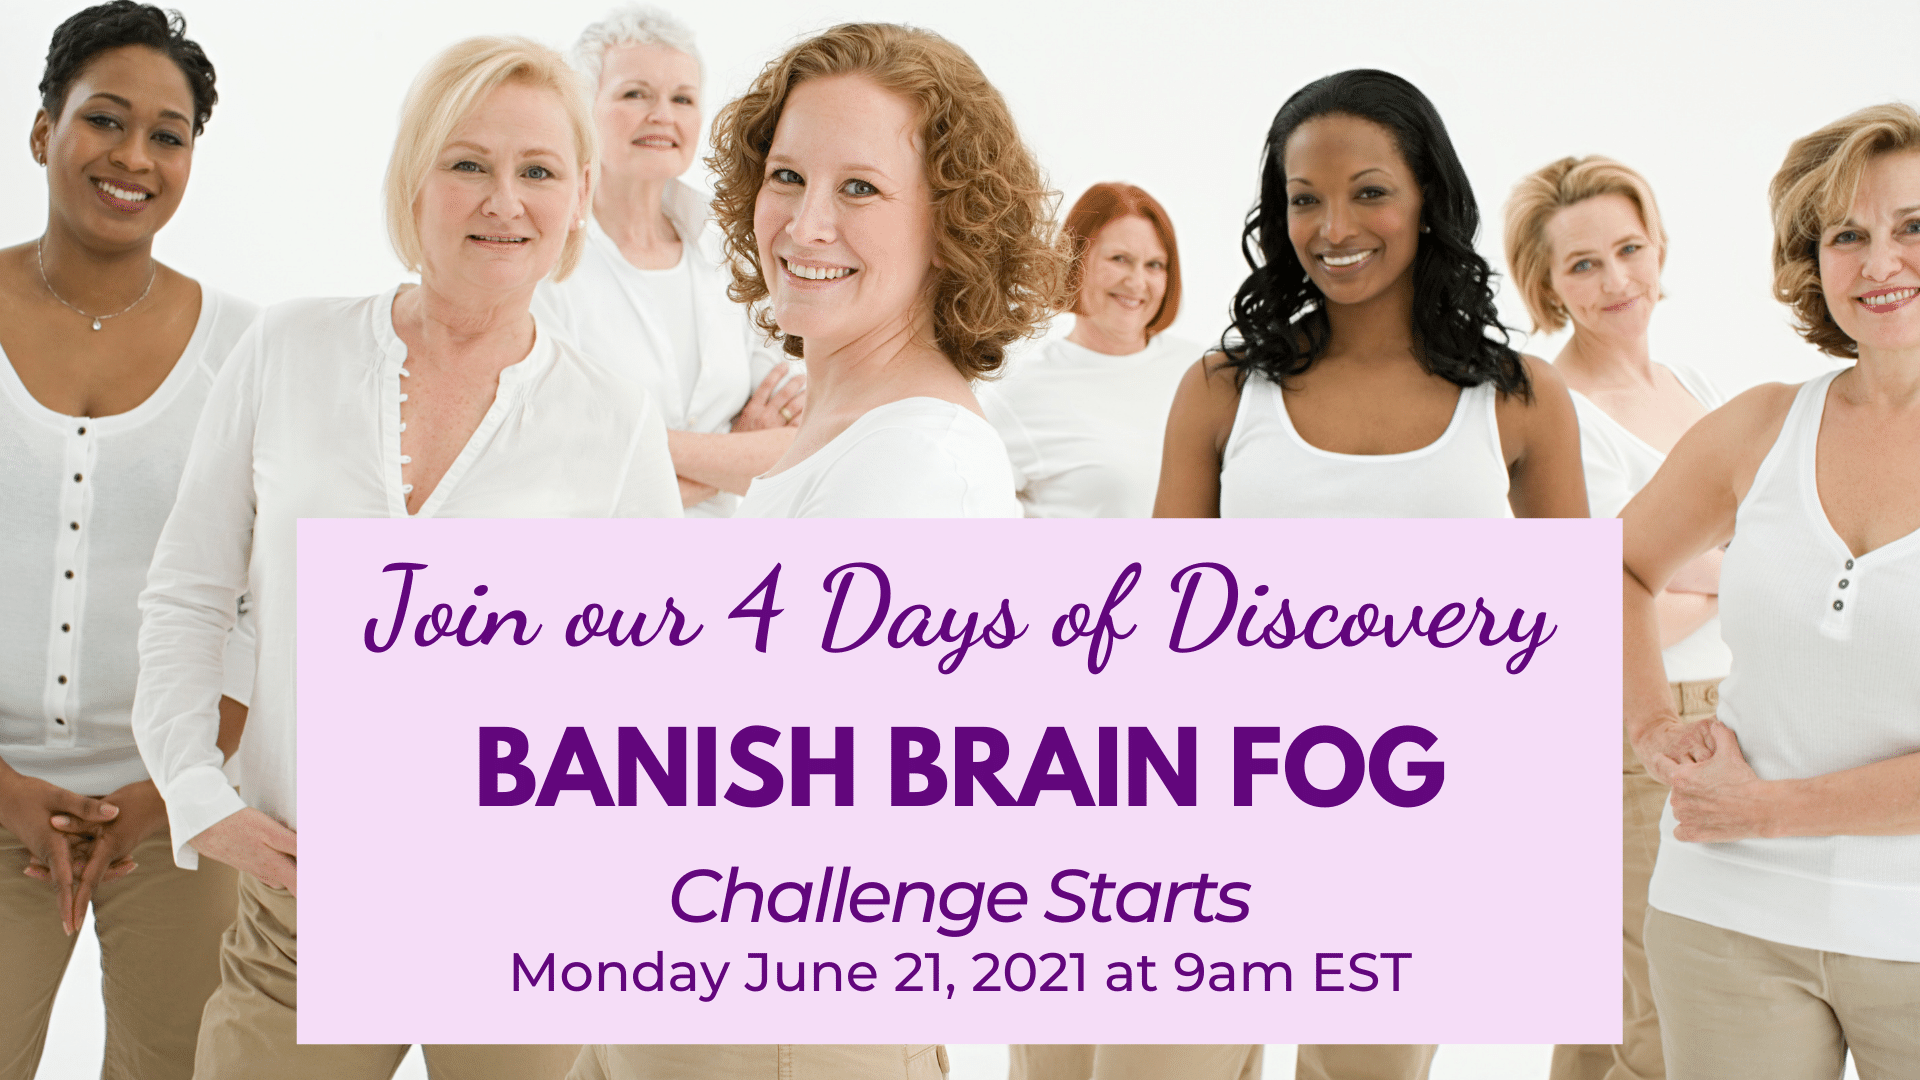 Join our 4 Days of Discovery BANISH BRAIN FOG